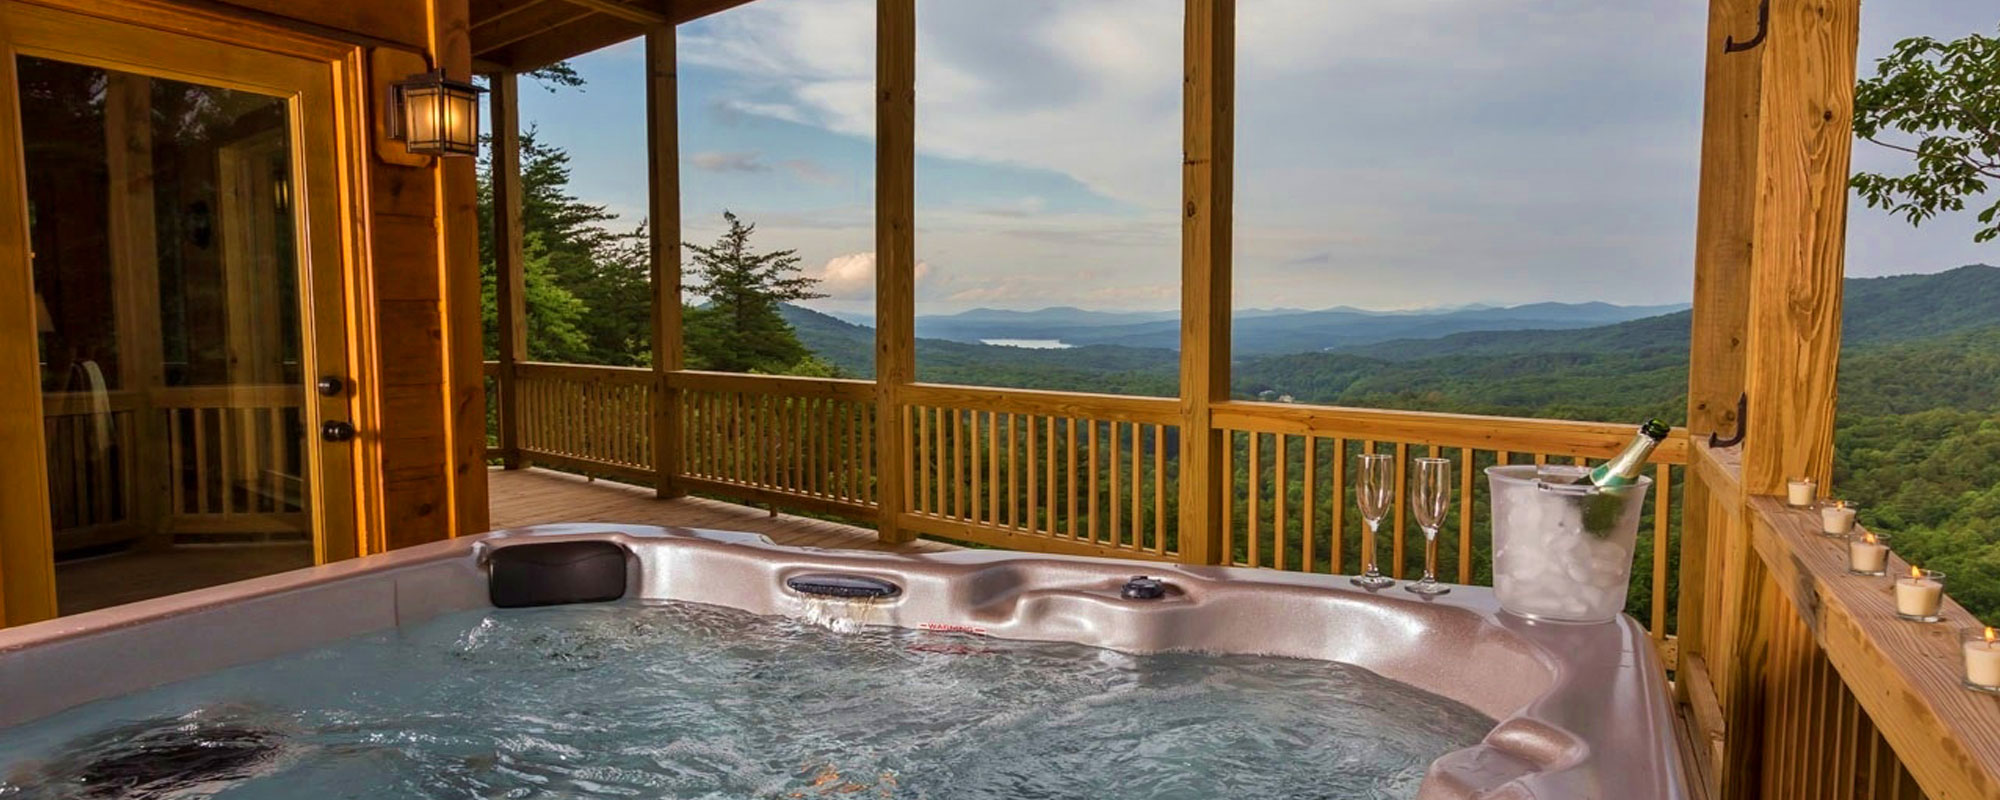 Luxury Cabin Rental Hot Tub